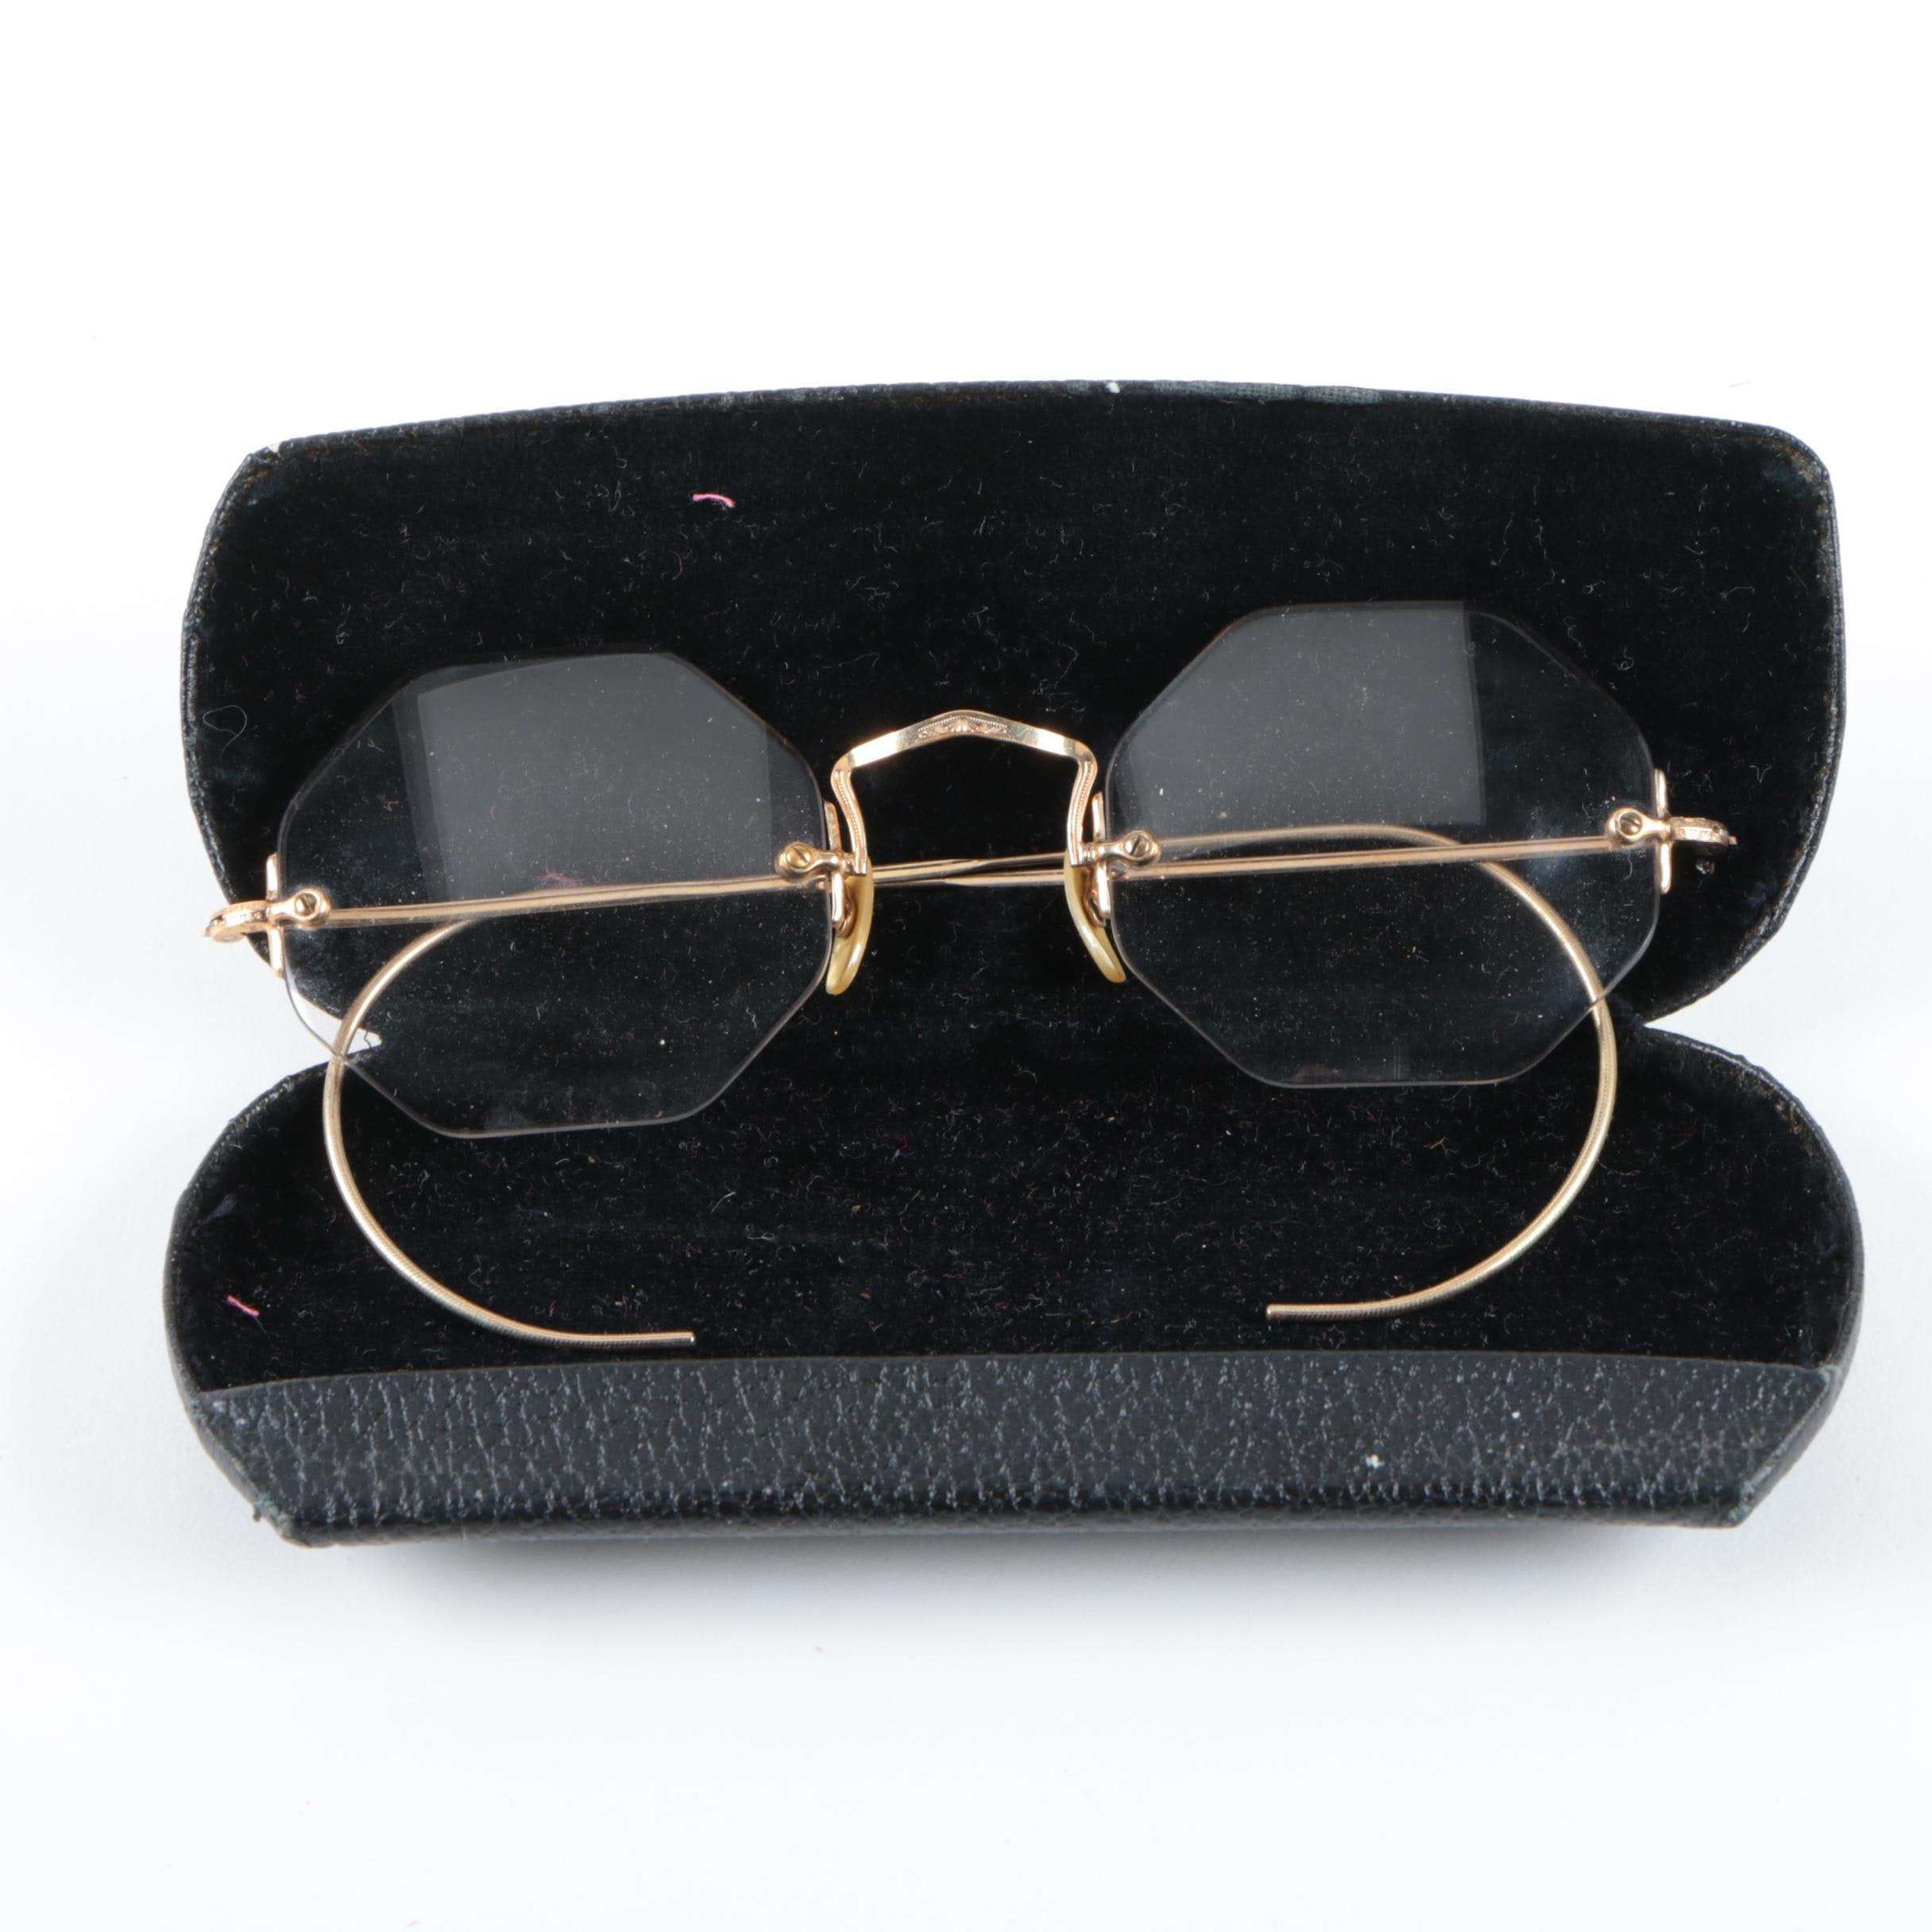 Bausch & Lomb Rimless Geometric Eyeglasses with Case